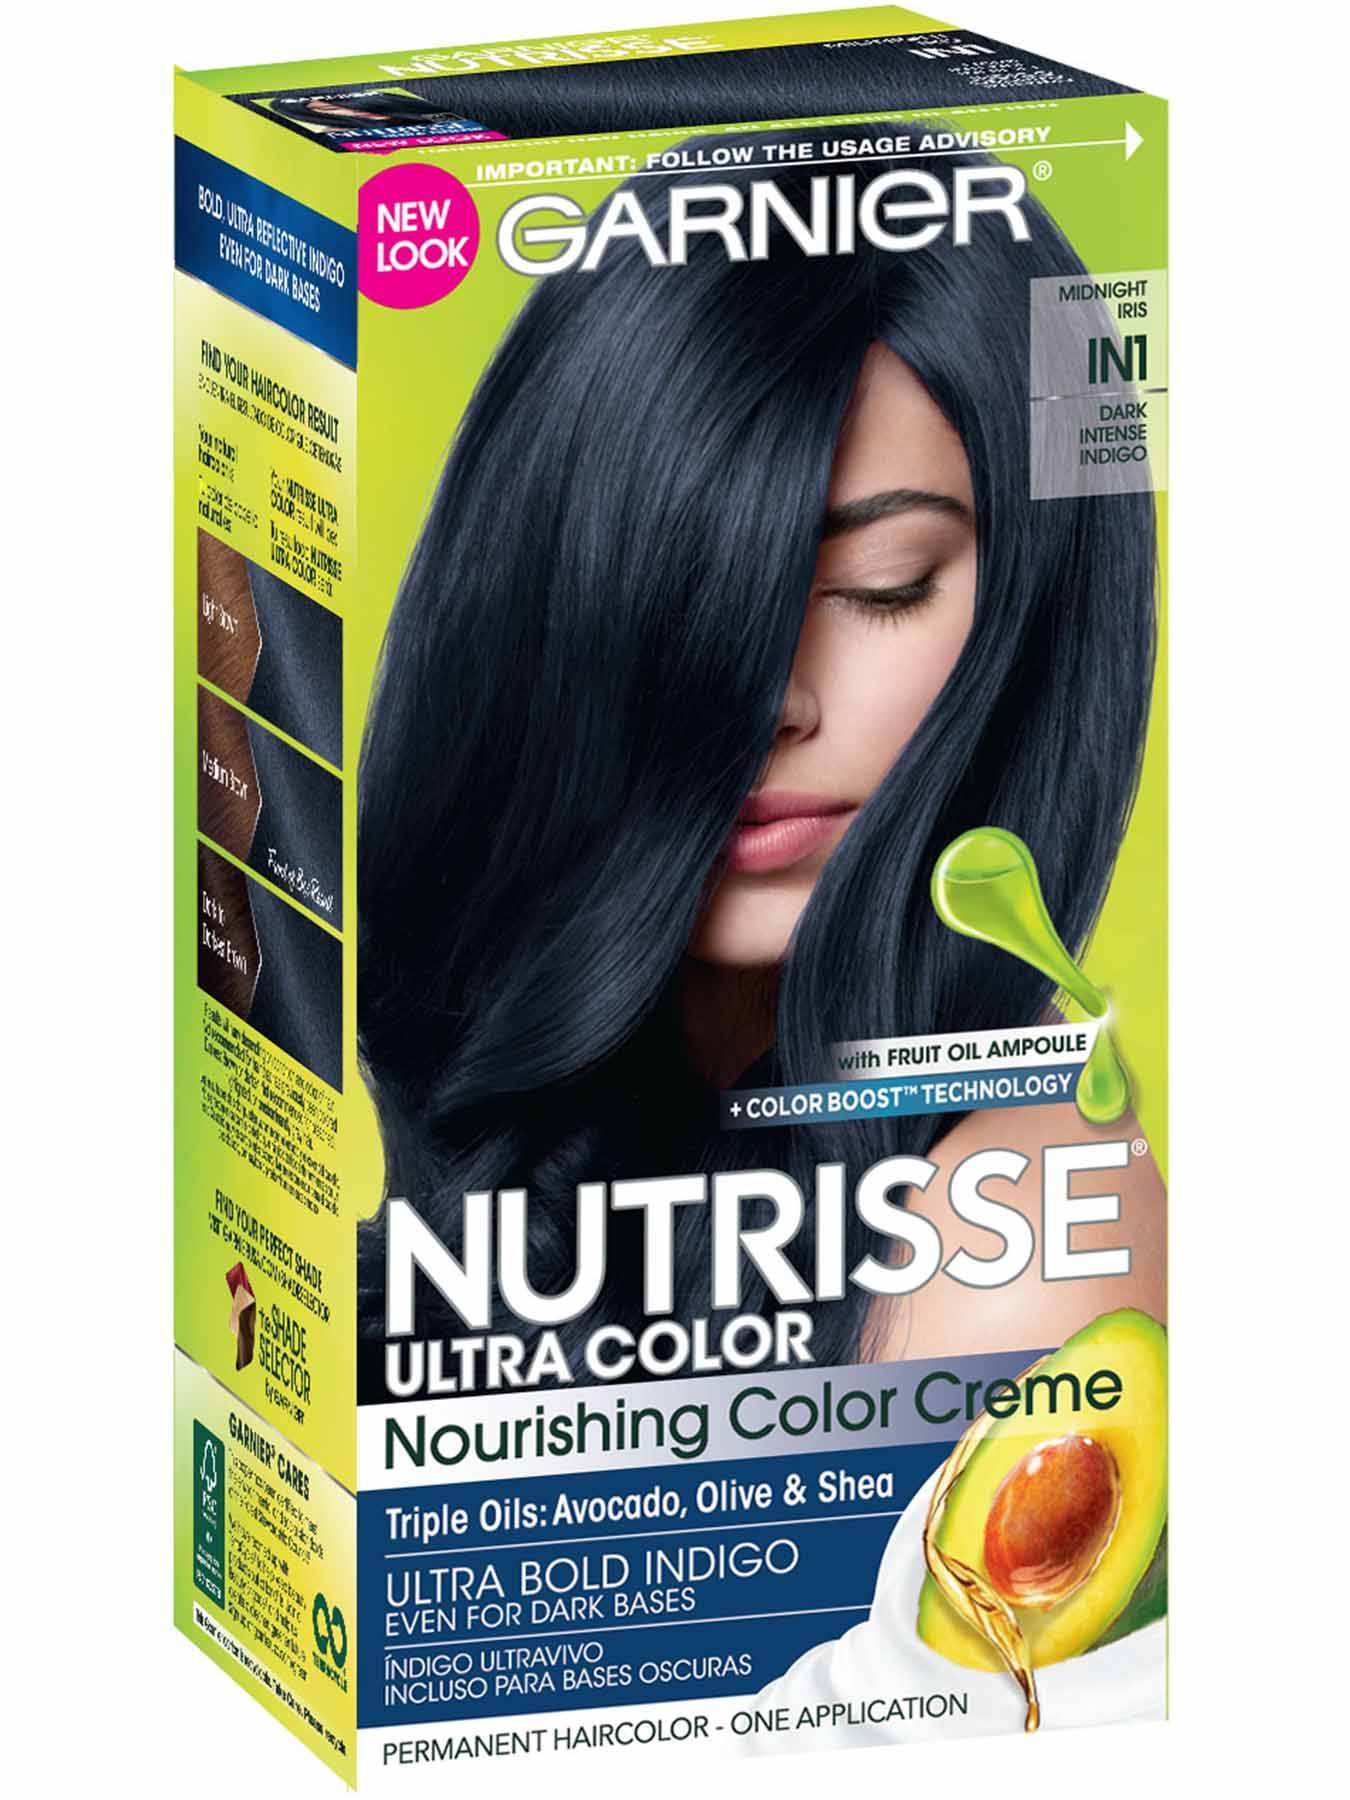 Garnier Nutrisse Nourishing Color Creme 42 Deep Burgundy Black Cherry